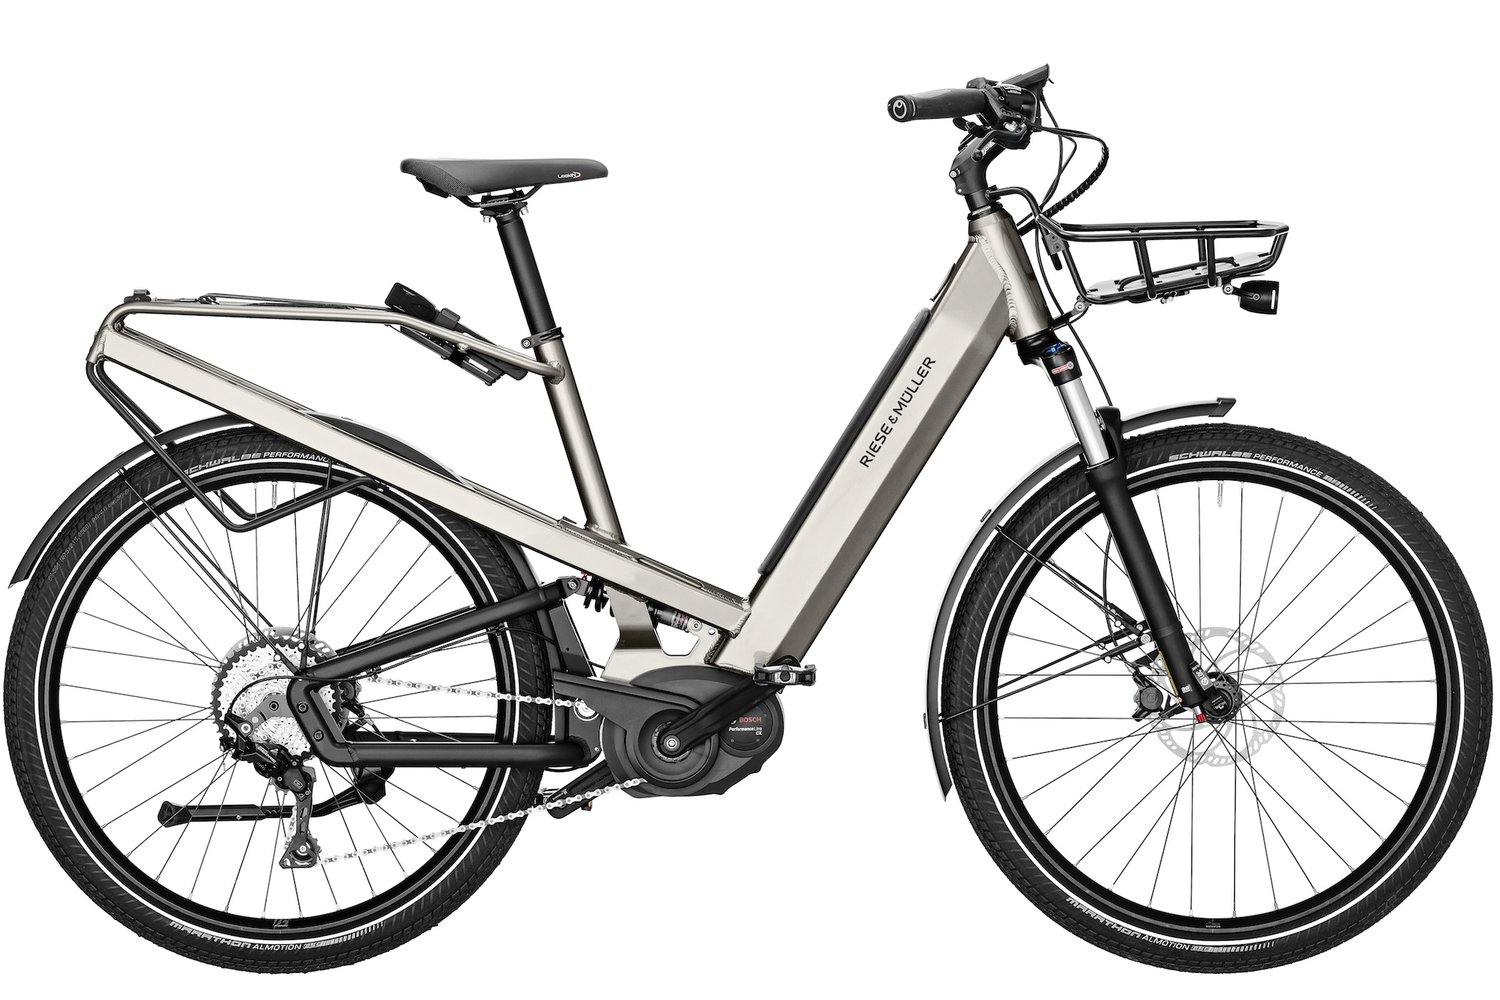 922b956ab83 Riese & Muller eBikes 2019 - What's New? — dlb cycles